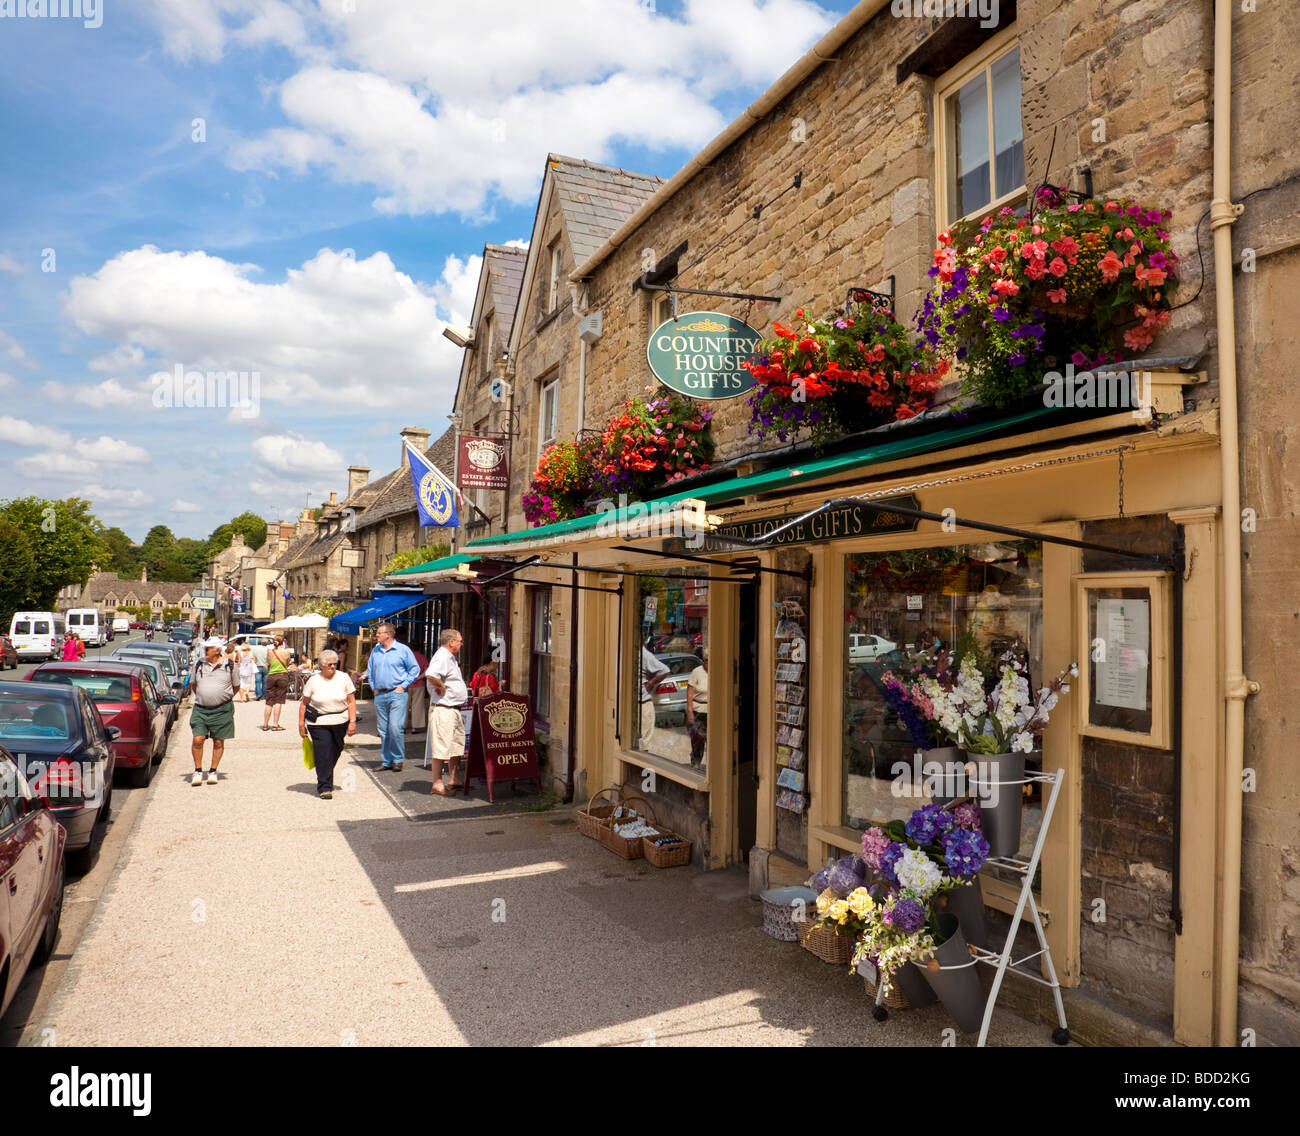 Old Cotswolds town of Burford, Oxfordshire, England, UK with shops and stores on the high street in mid summer - Stock Image